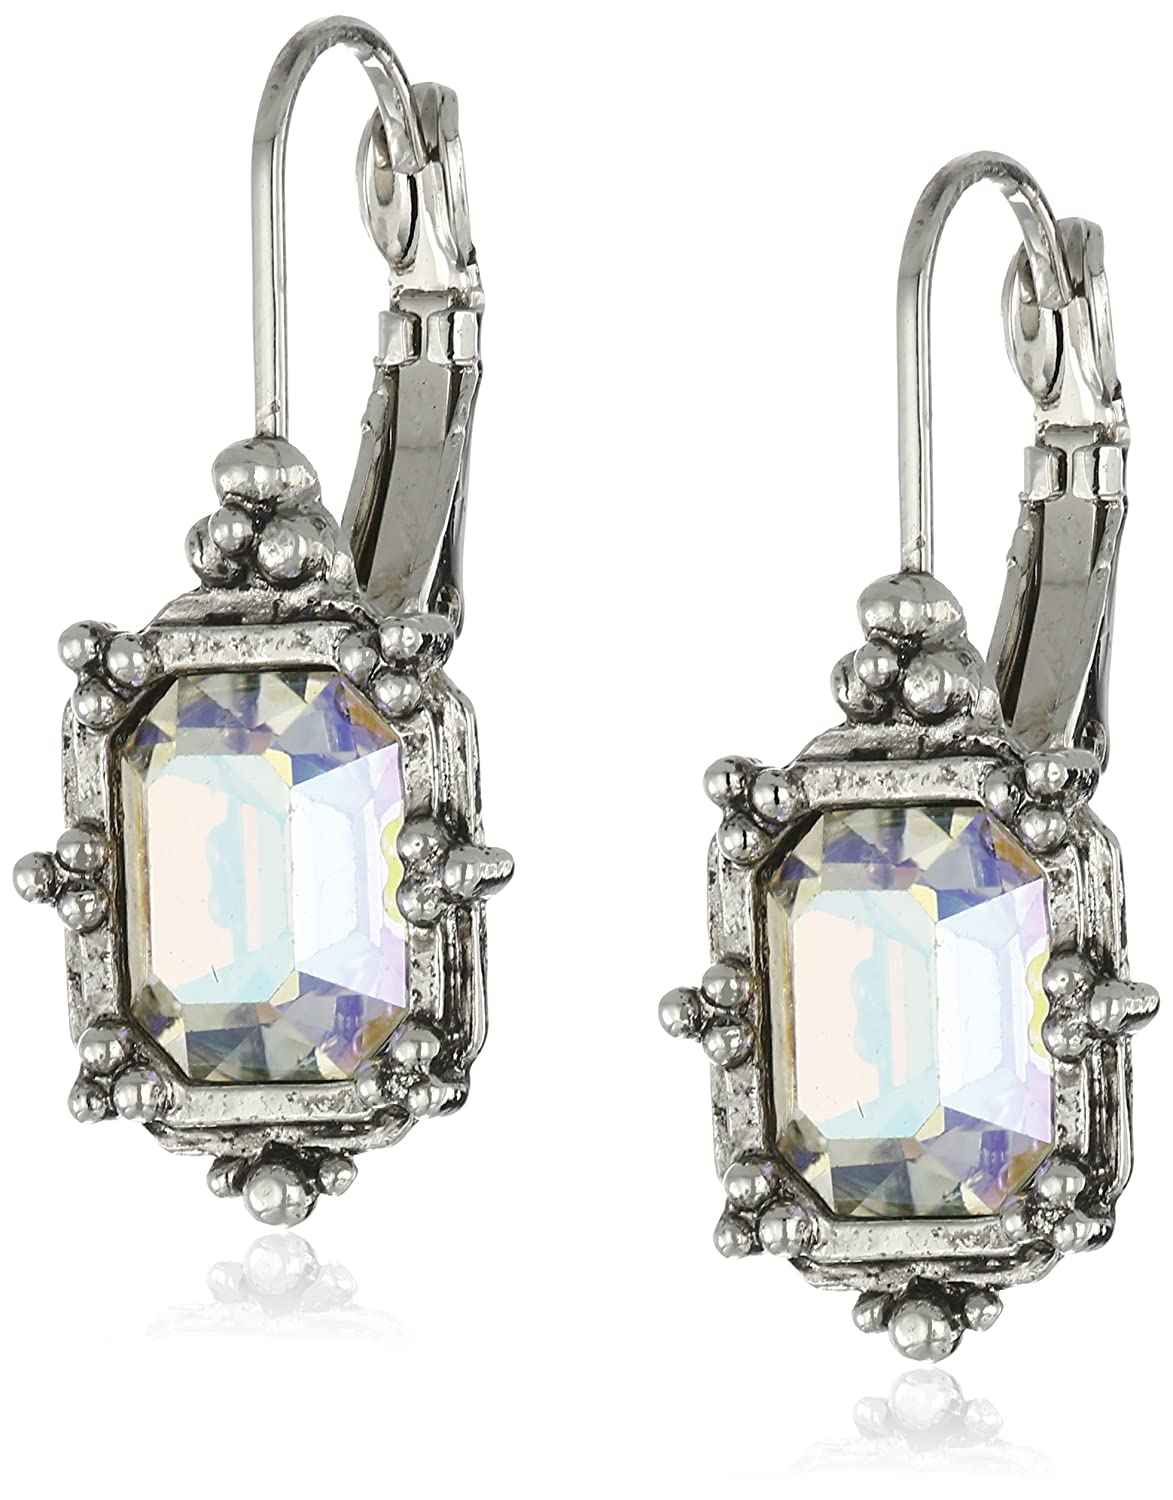 1928 Jewelry Silver-Tone Aurore Boreale Octagon Drop Earrings 24283